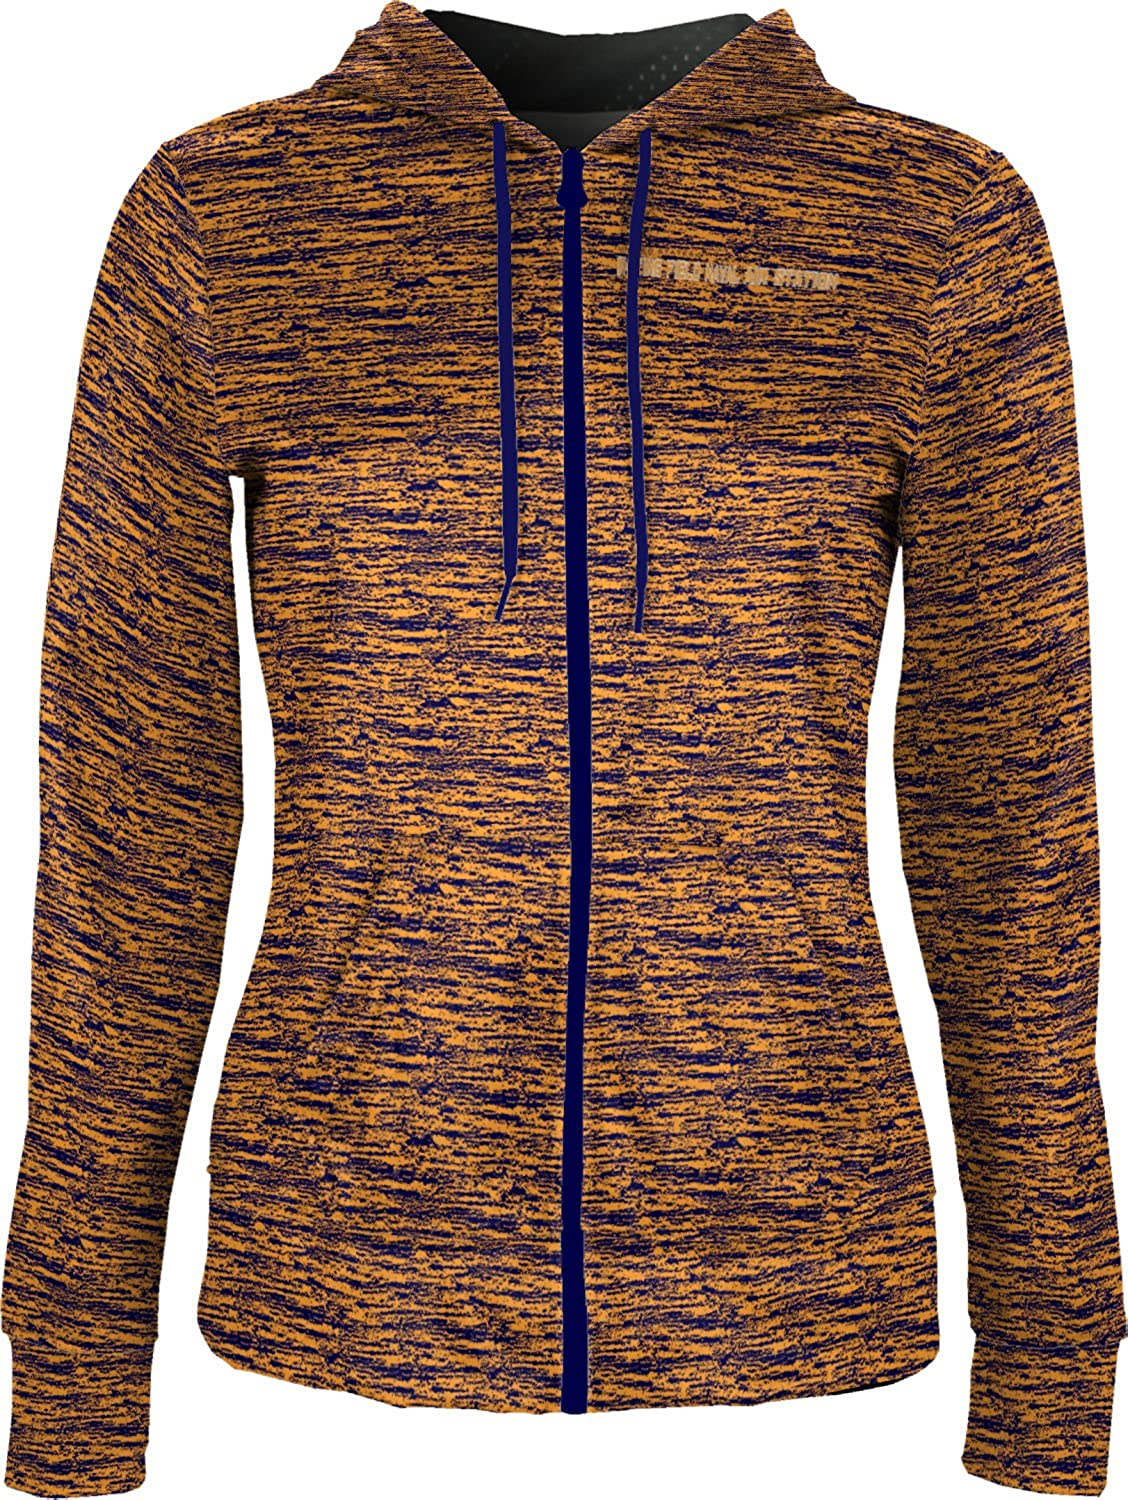 Women's Whiting Field Naval Air Station Military Brushed Fullzip Hoodie